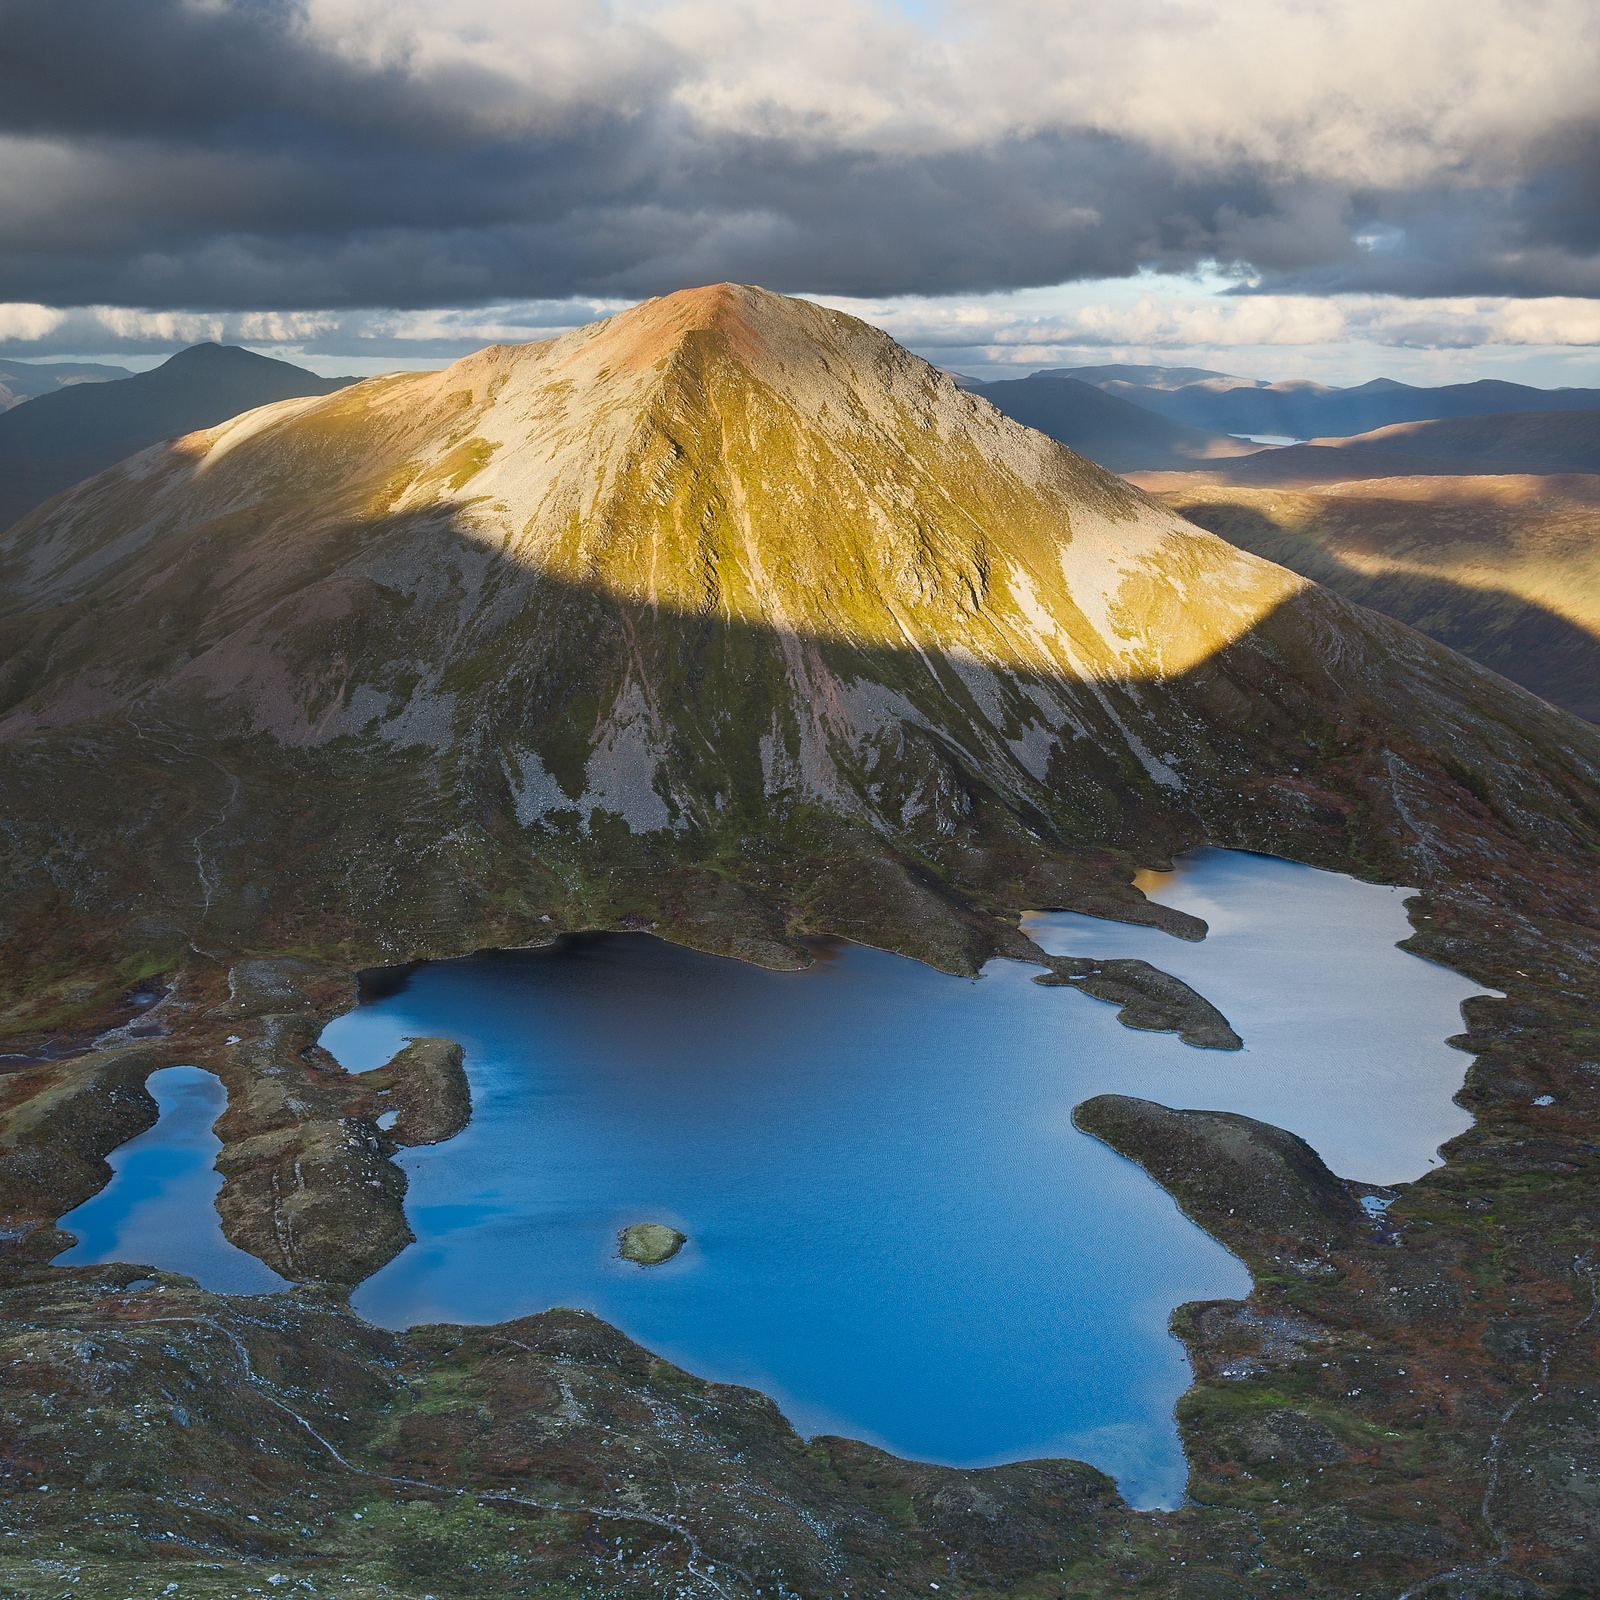 Sgurr Eilde Mor in the Mamores | Flickr - Photo Sharing!